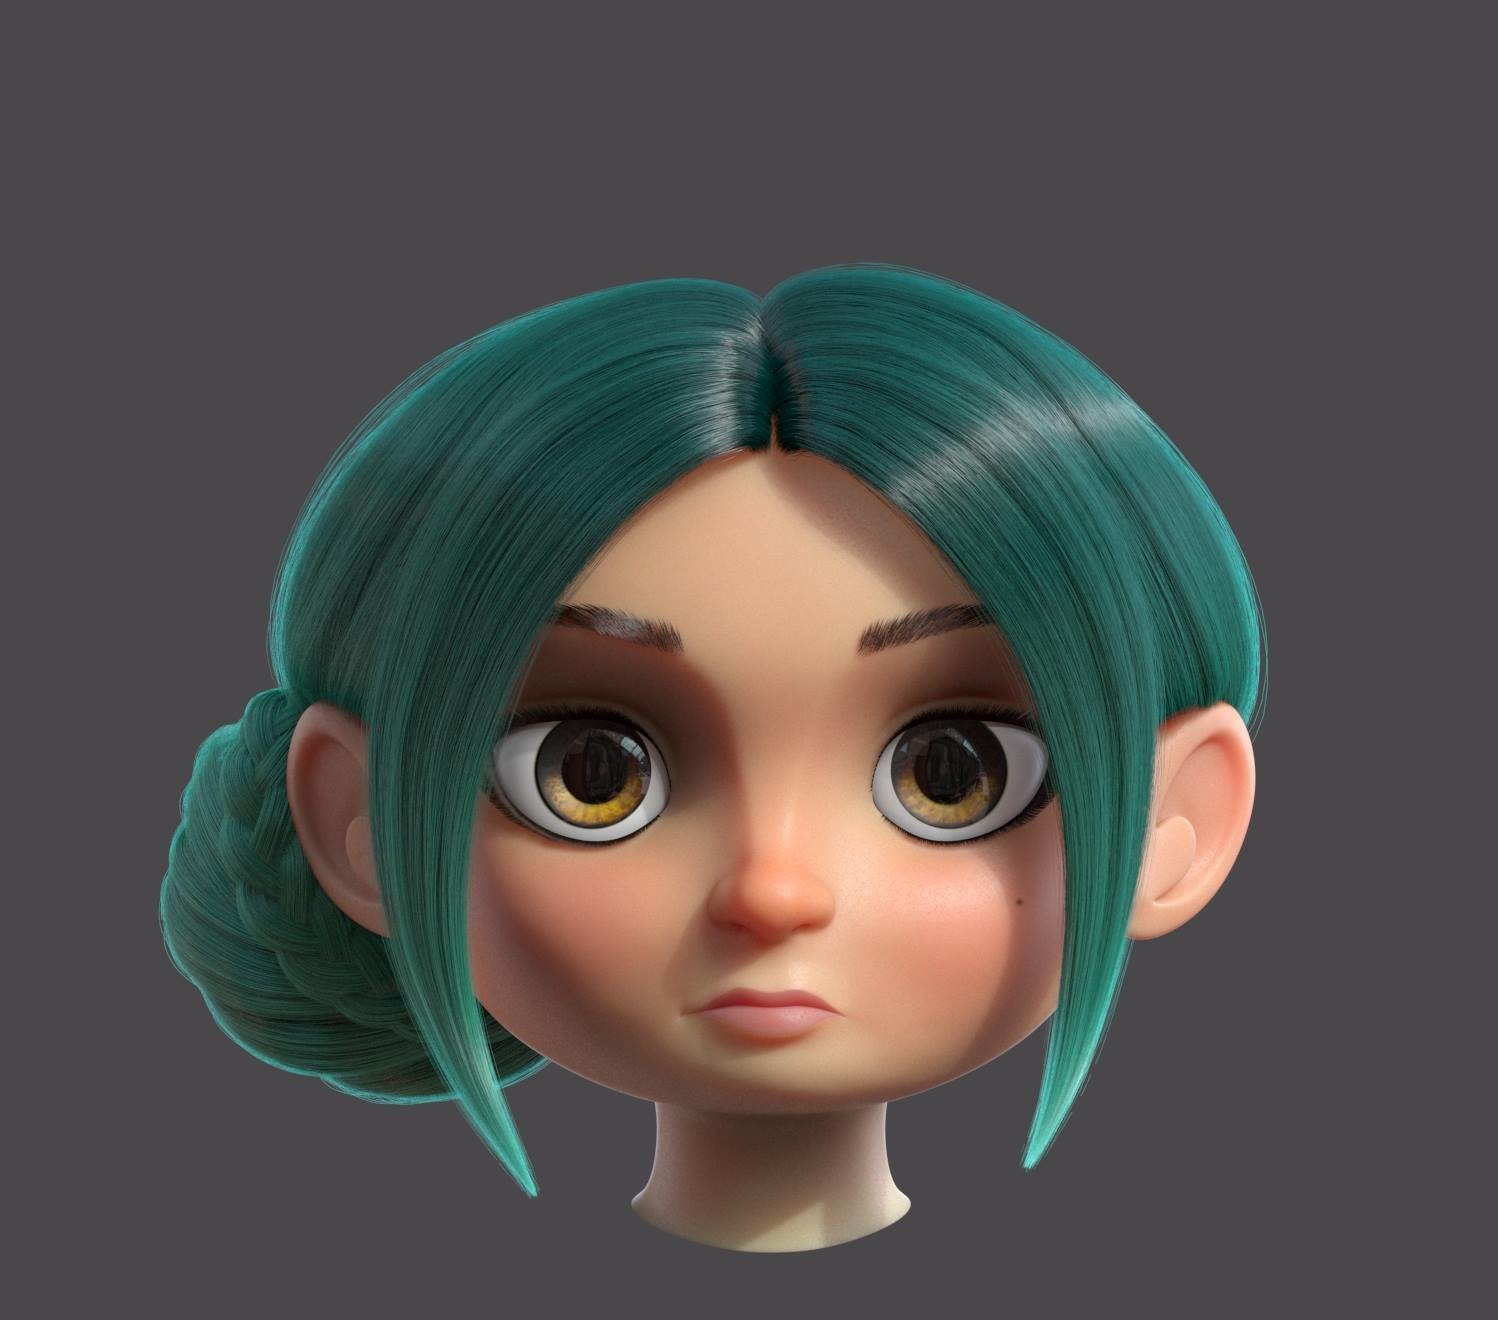 2D to 3D Character